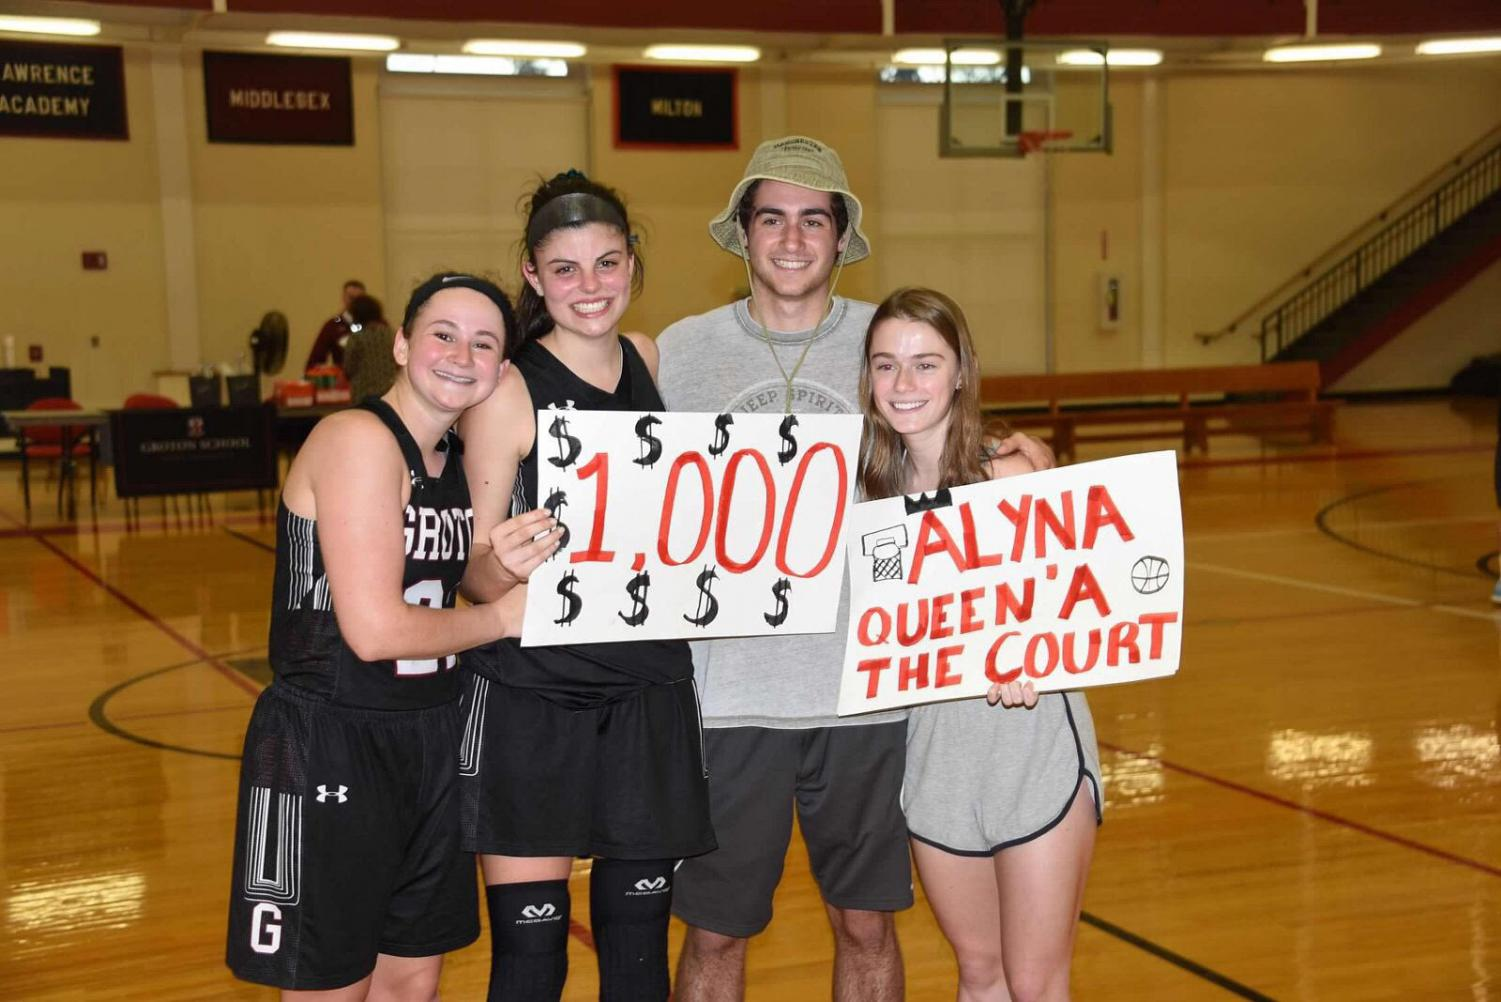 Alyna with friends after scoring her 1,000th point.